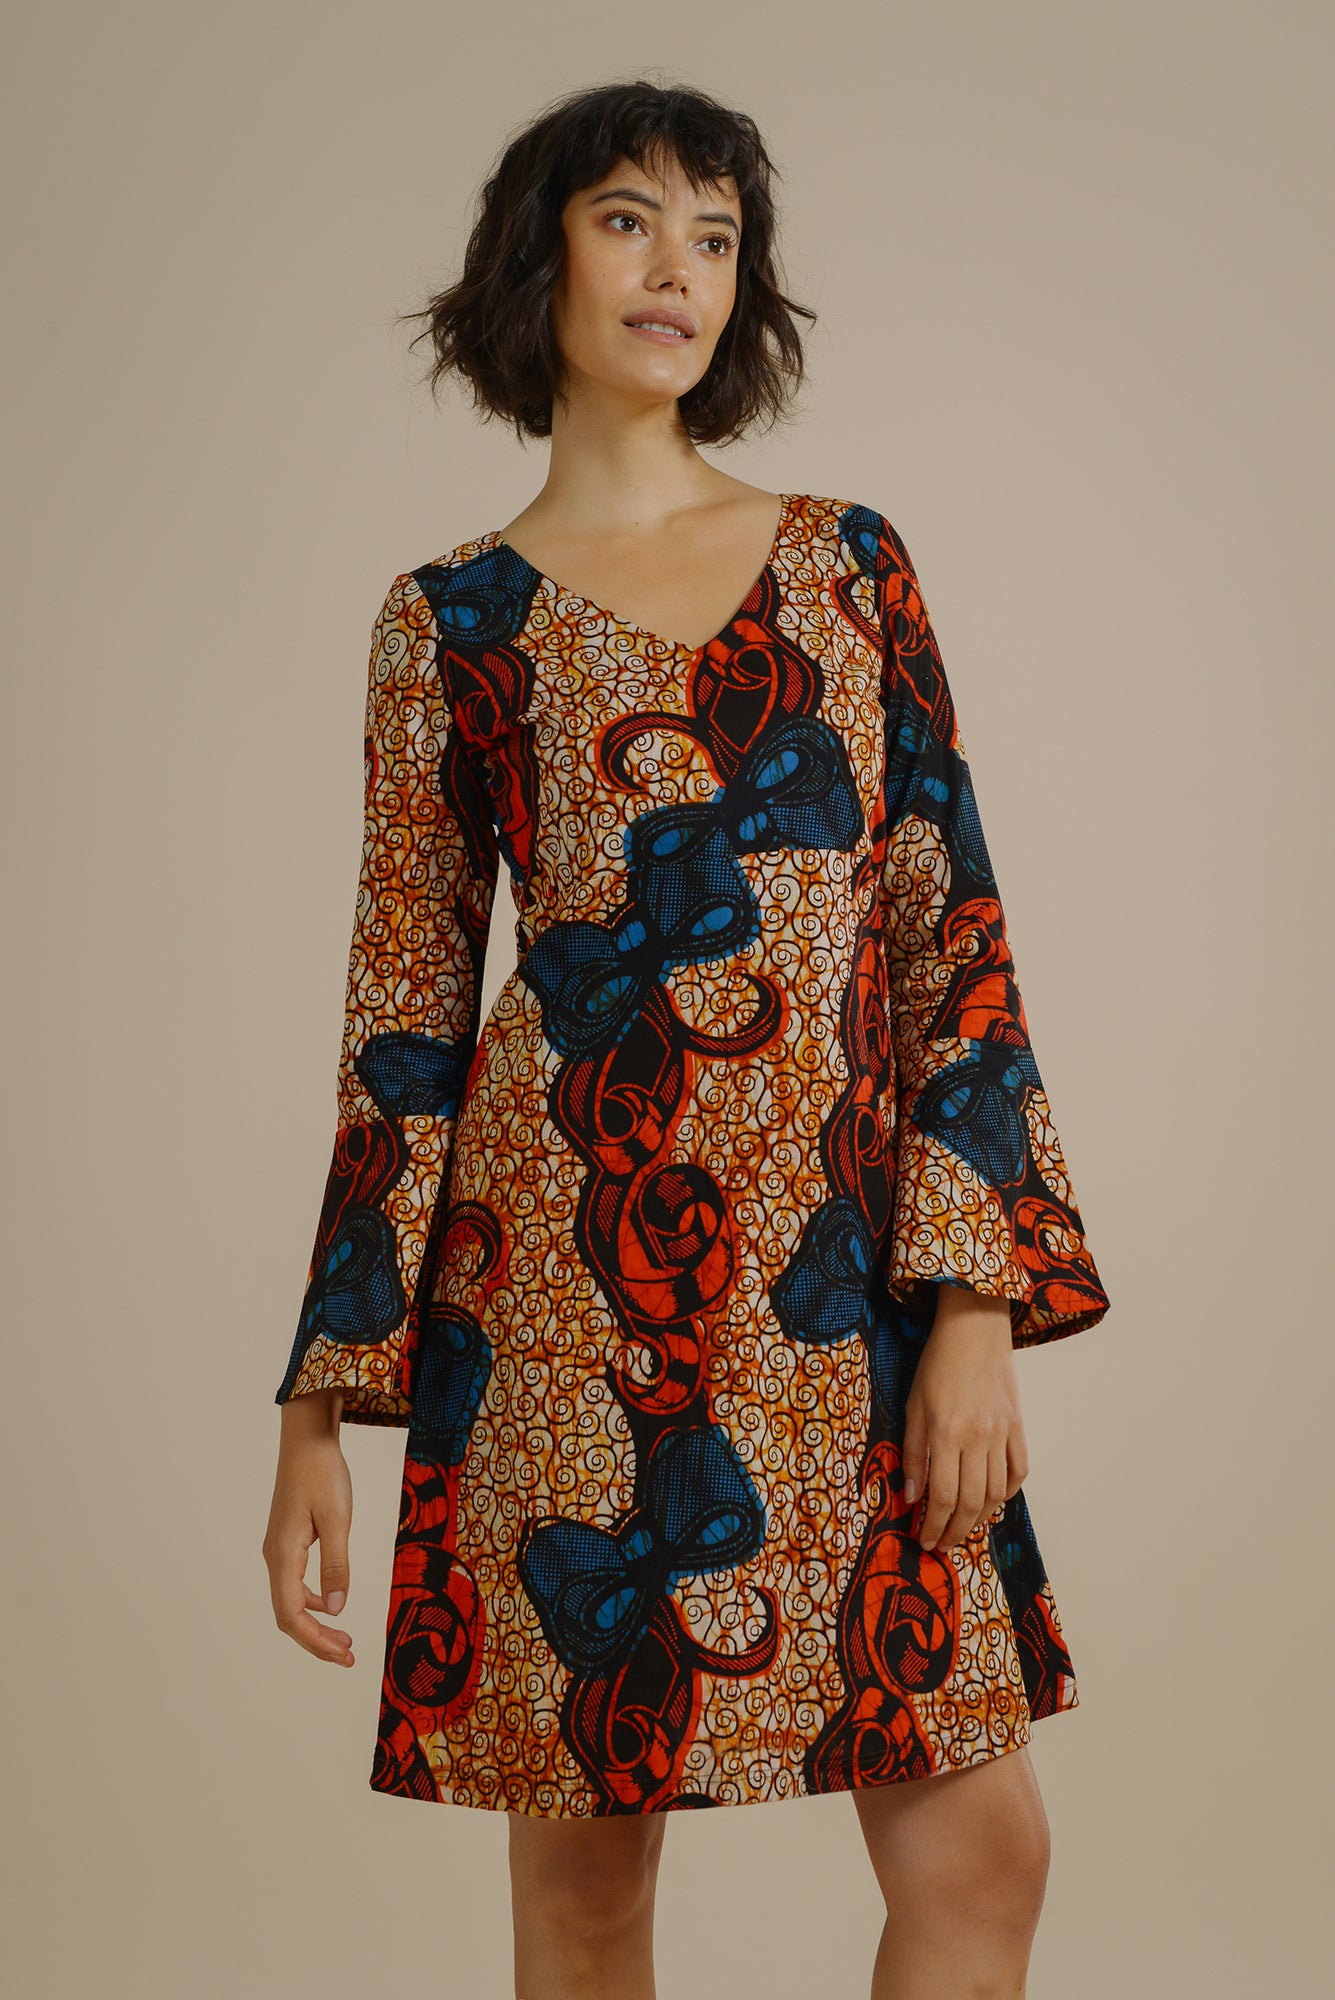 cea2f32c19 Giulia Flared Sleeve dress in Red and Blue Bow - Mayamiko Sustainable  Fashion ...